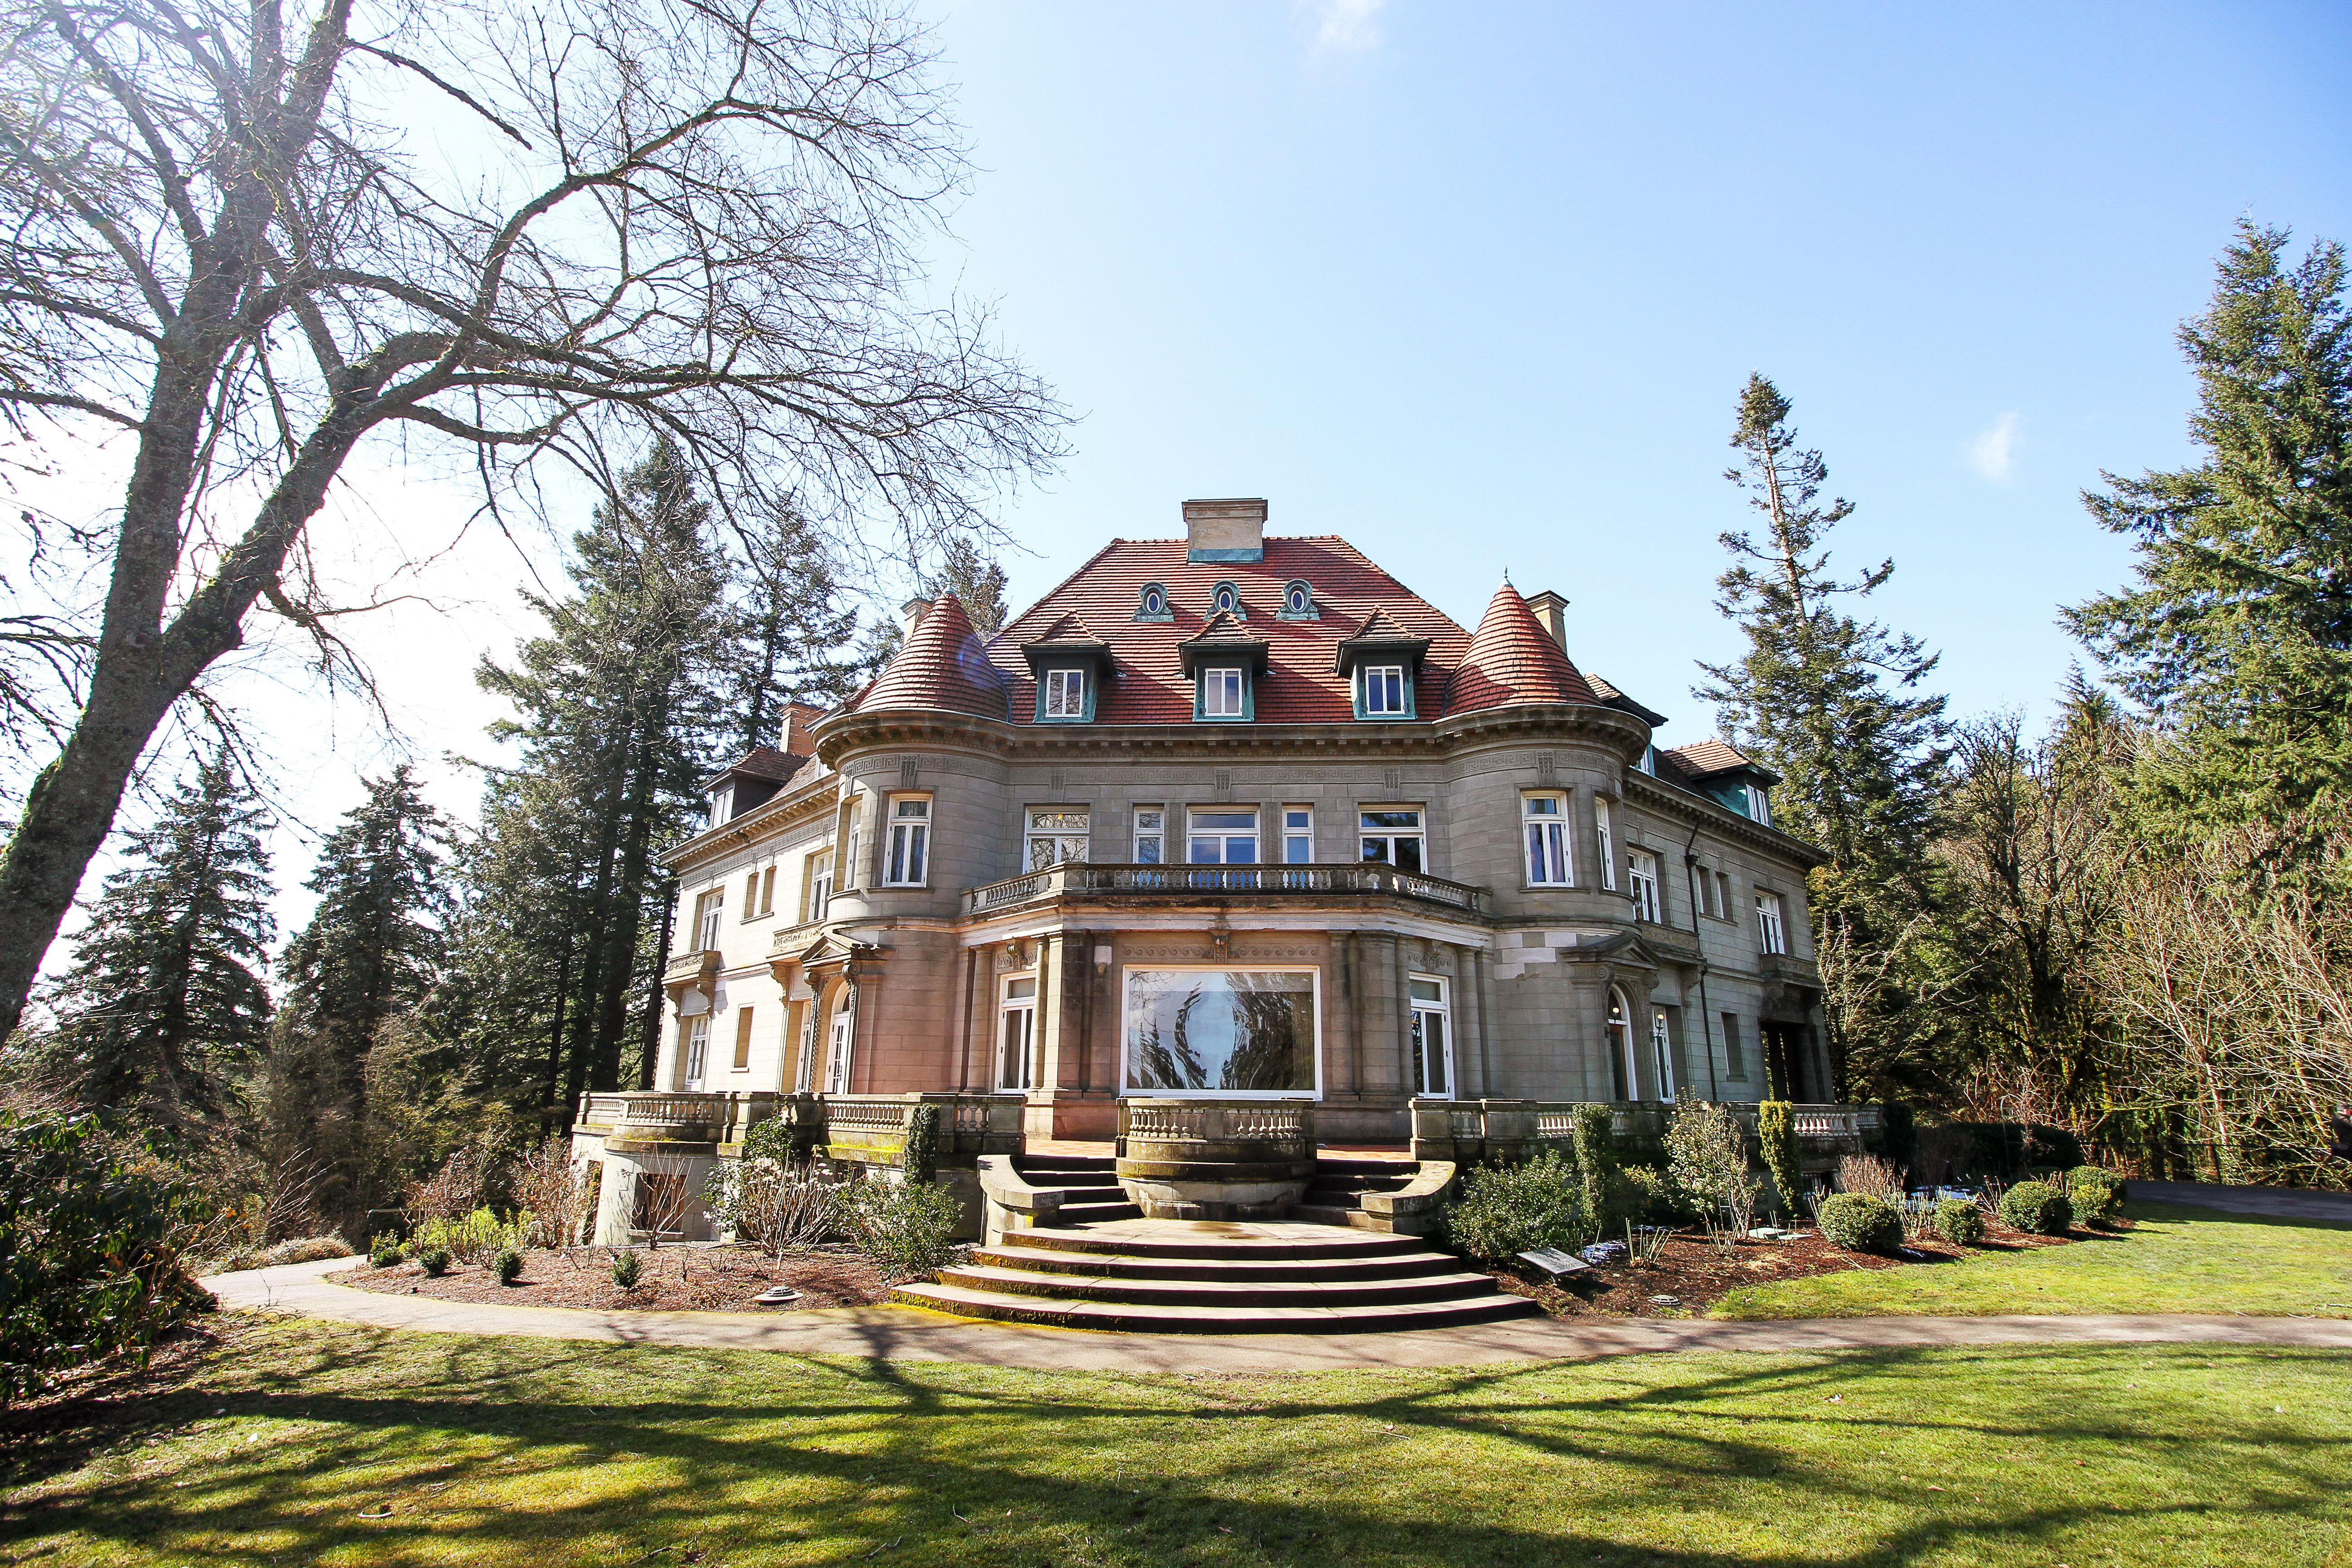 the exterior of the Pittock Mansion